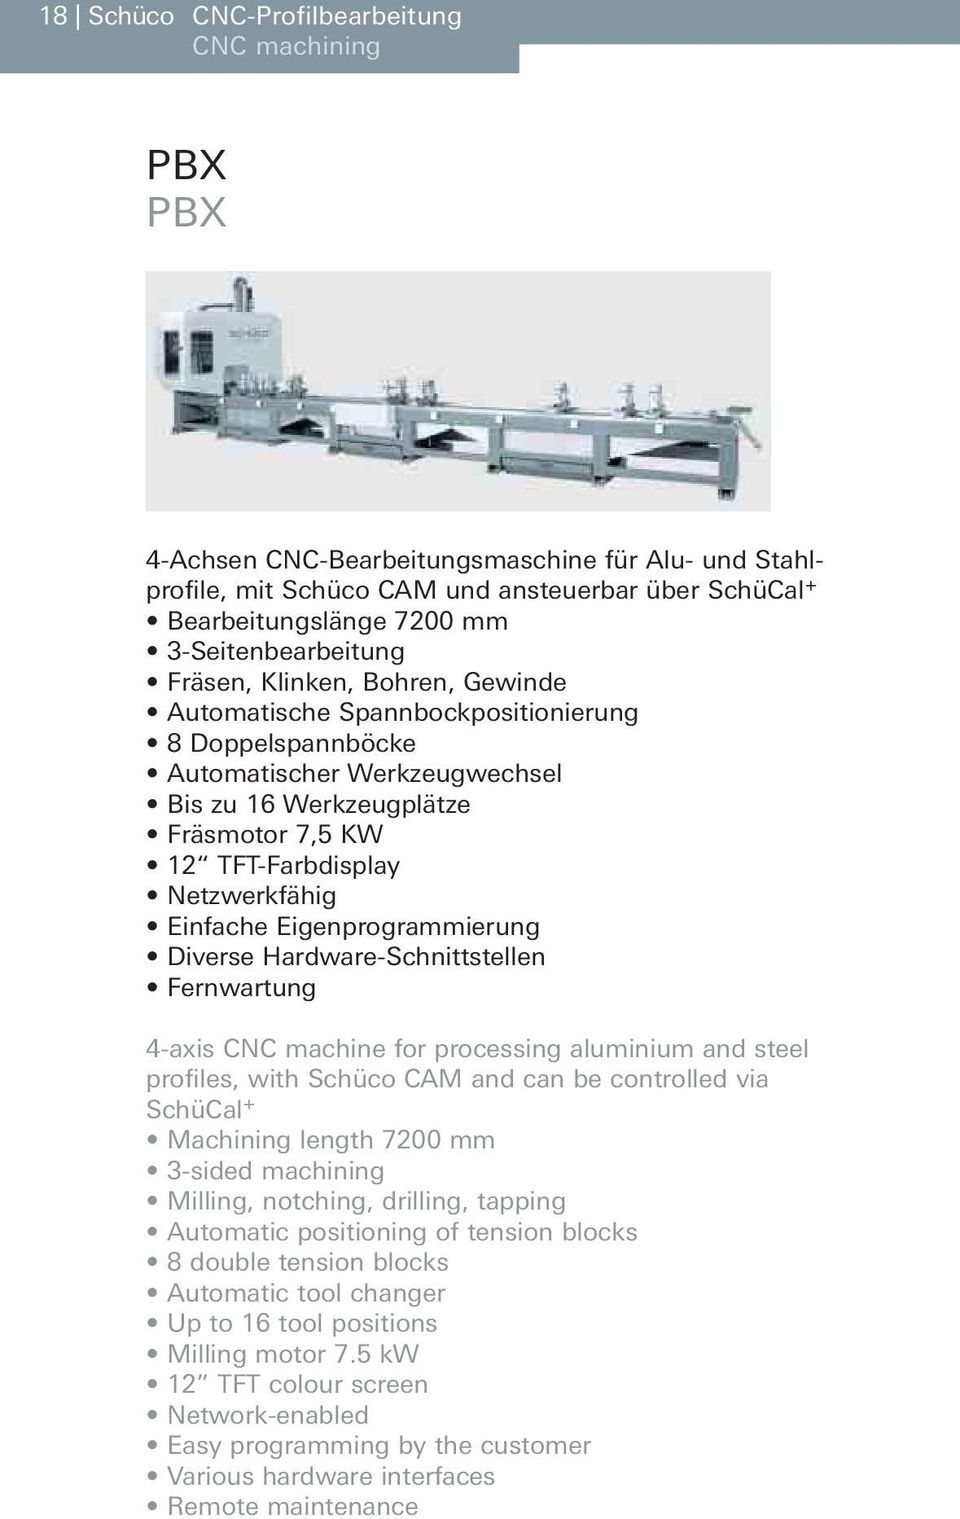 Netzwerkfähig Einfache Eigenprogrammierung Diverse Hardware-Schnittstellen Fernwartung 4-axis CNC machine for processing aluminium and steel profiles, with Schüco CAM and can be controlled via